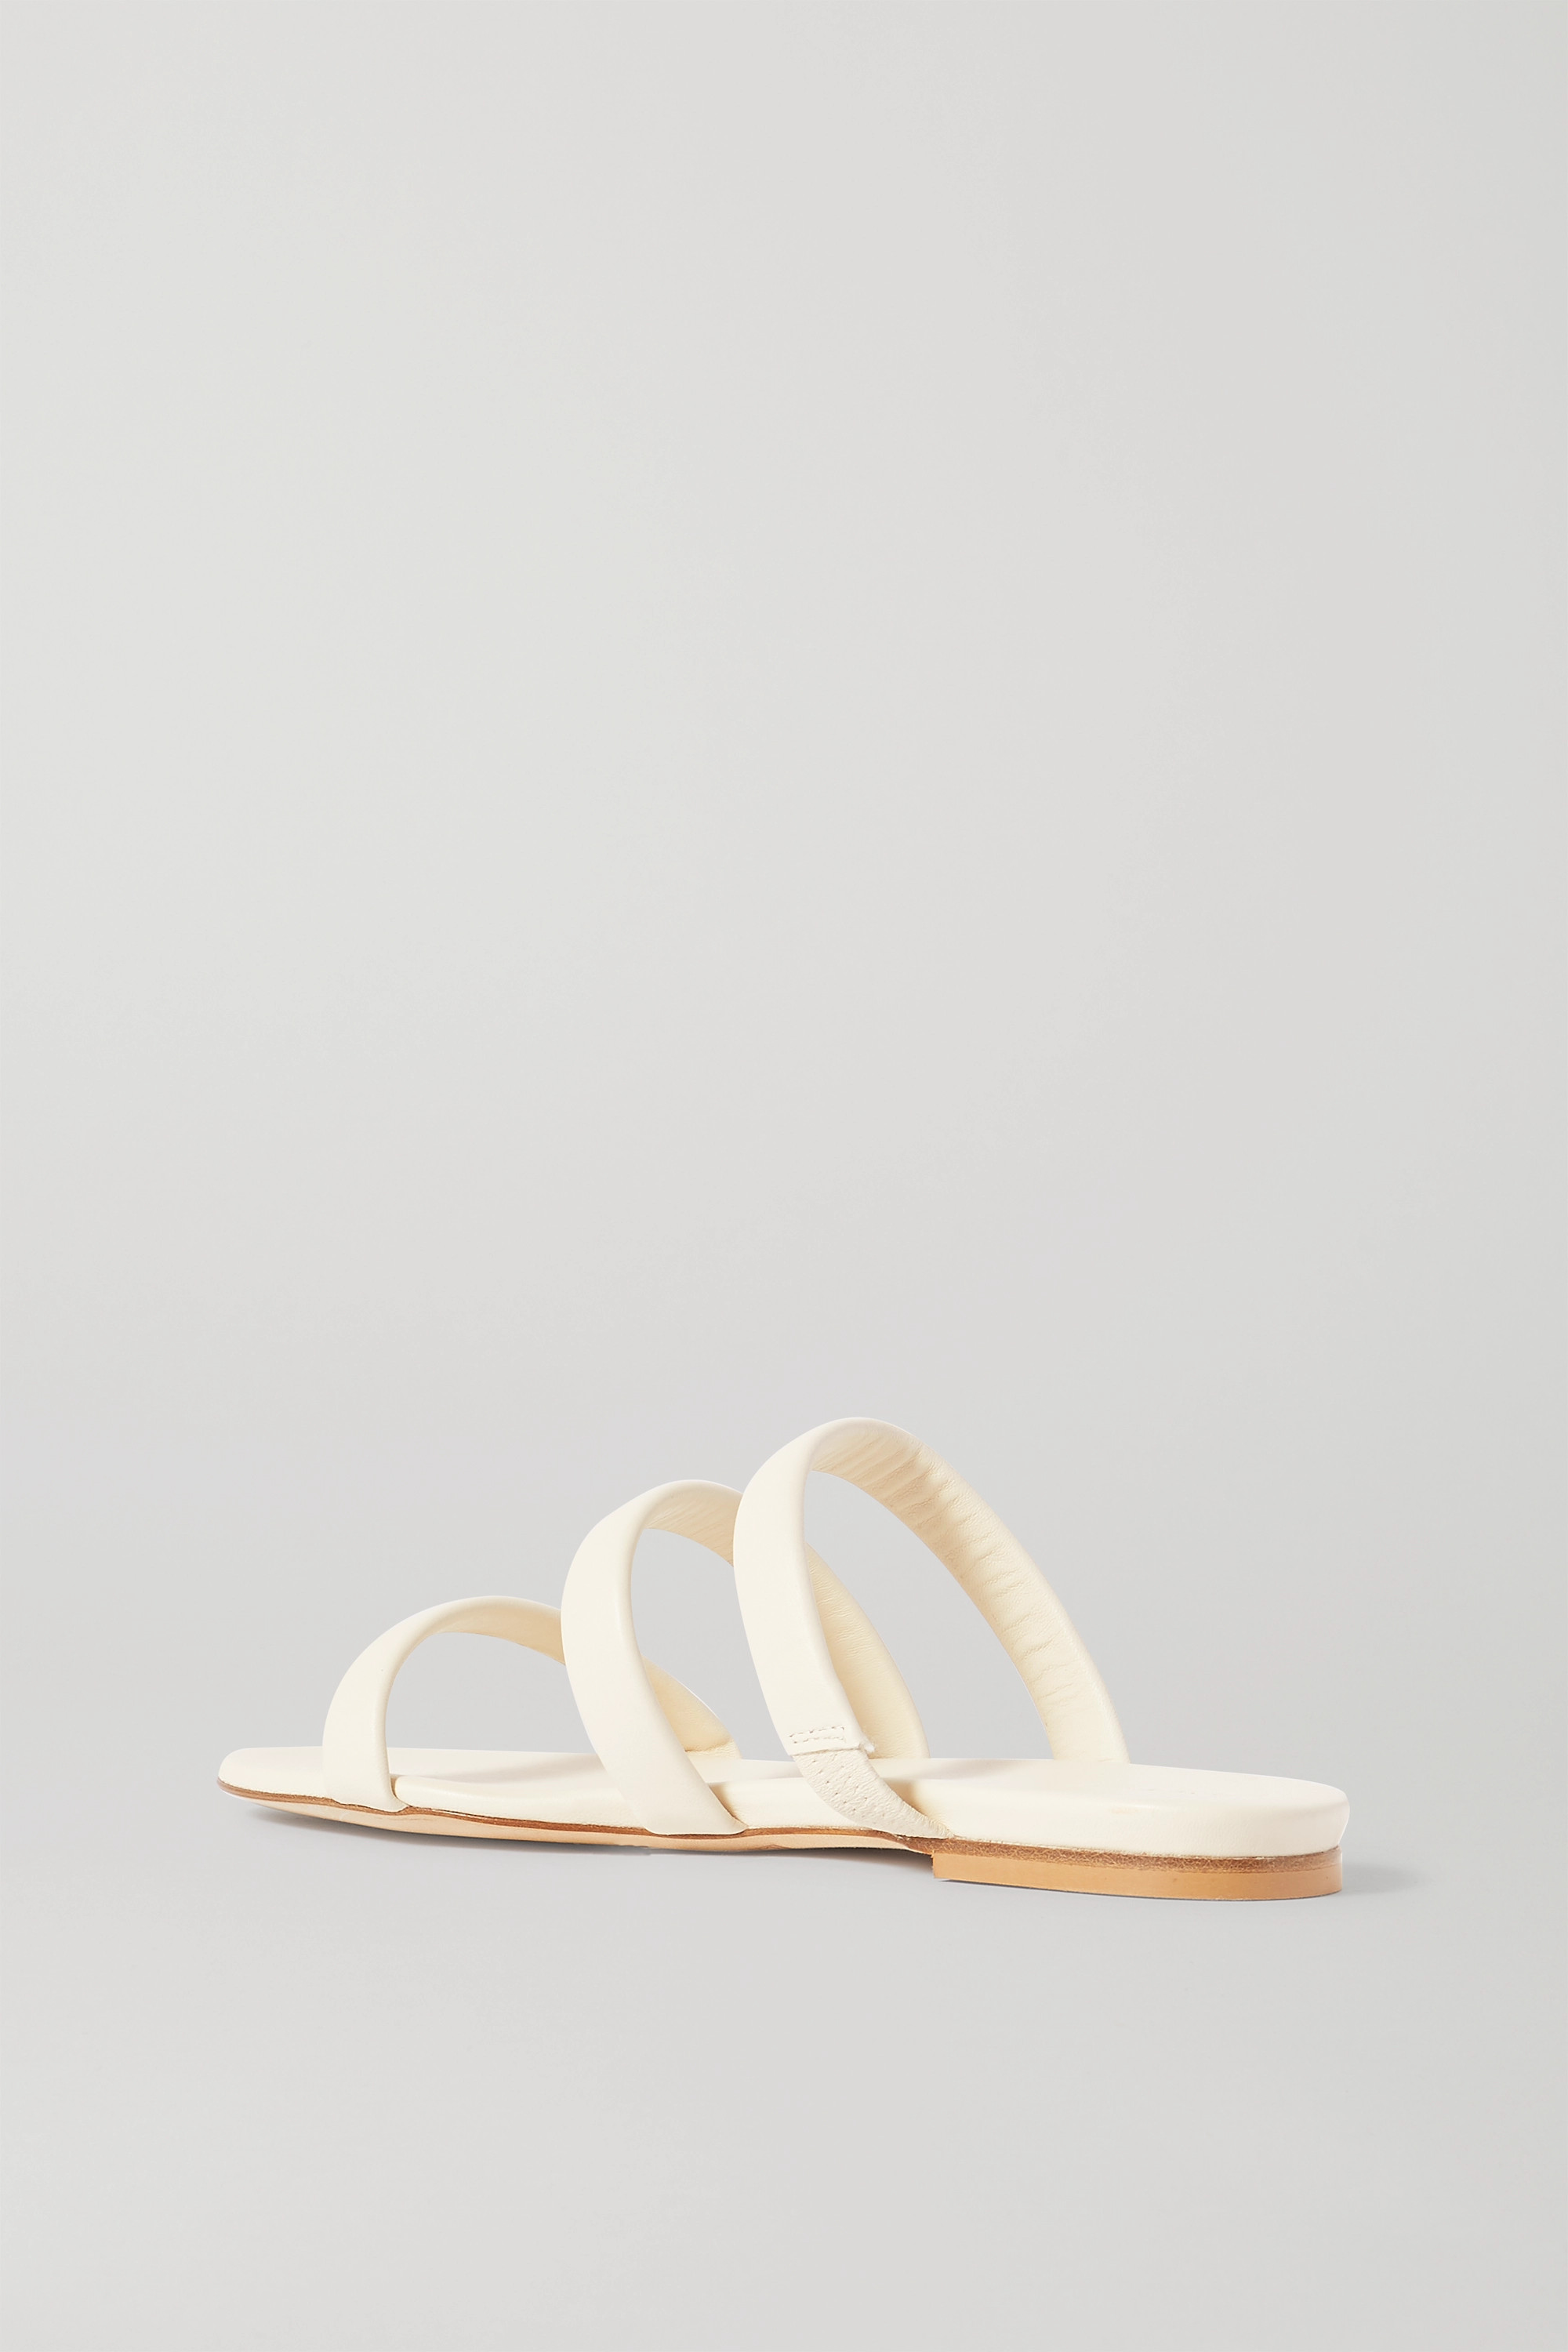 aeyde Chrissy leather slides